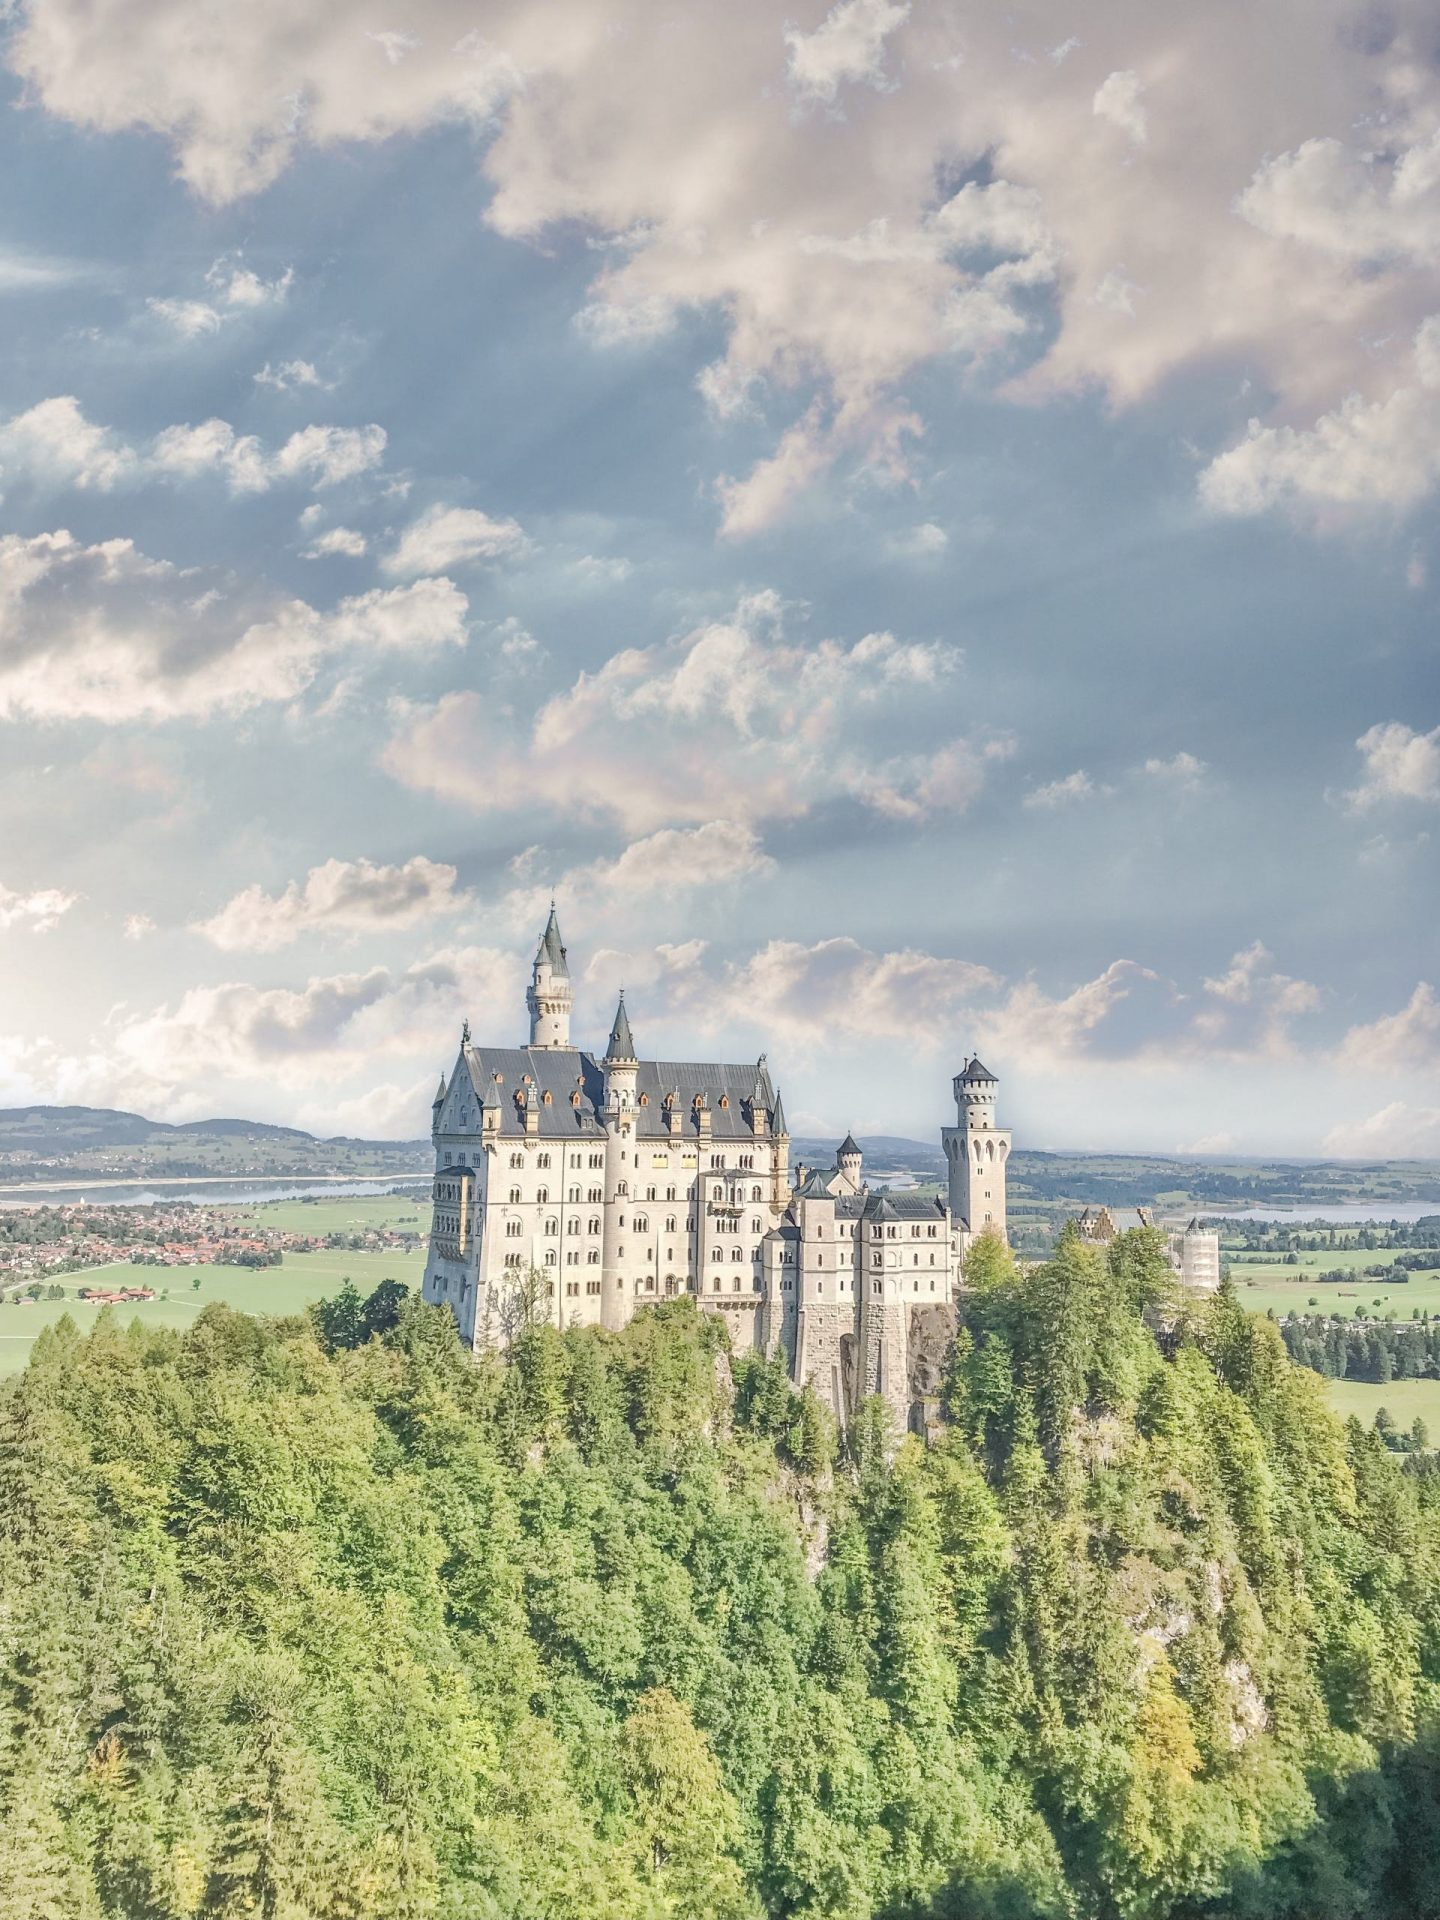 Bijuleni - Day Trip to Neuschwanstein Castle